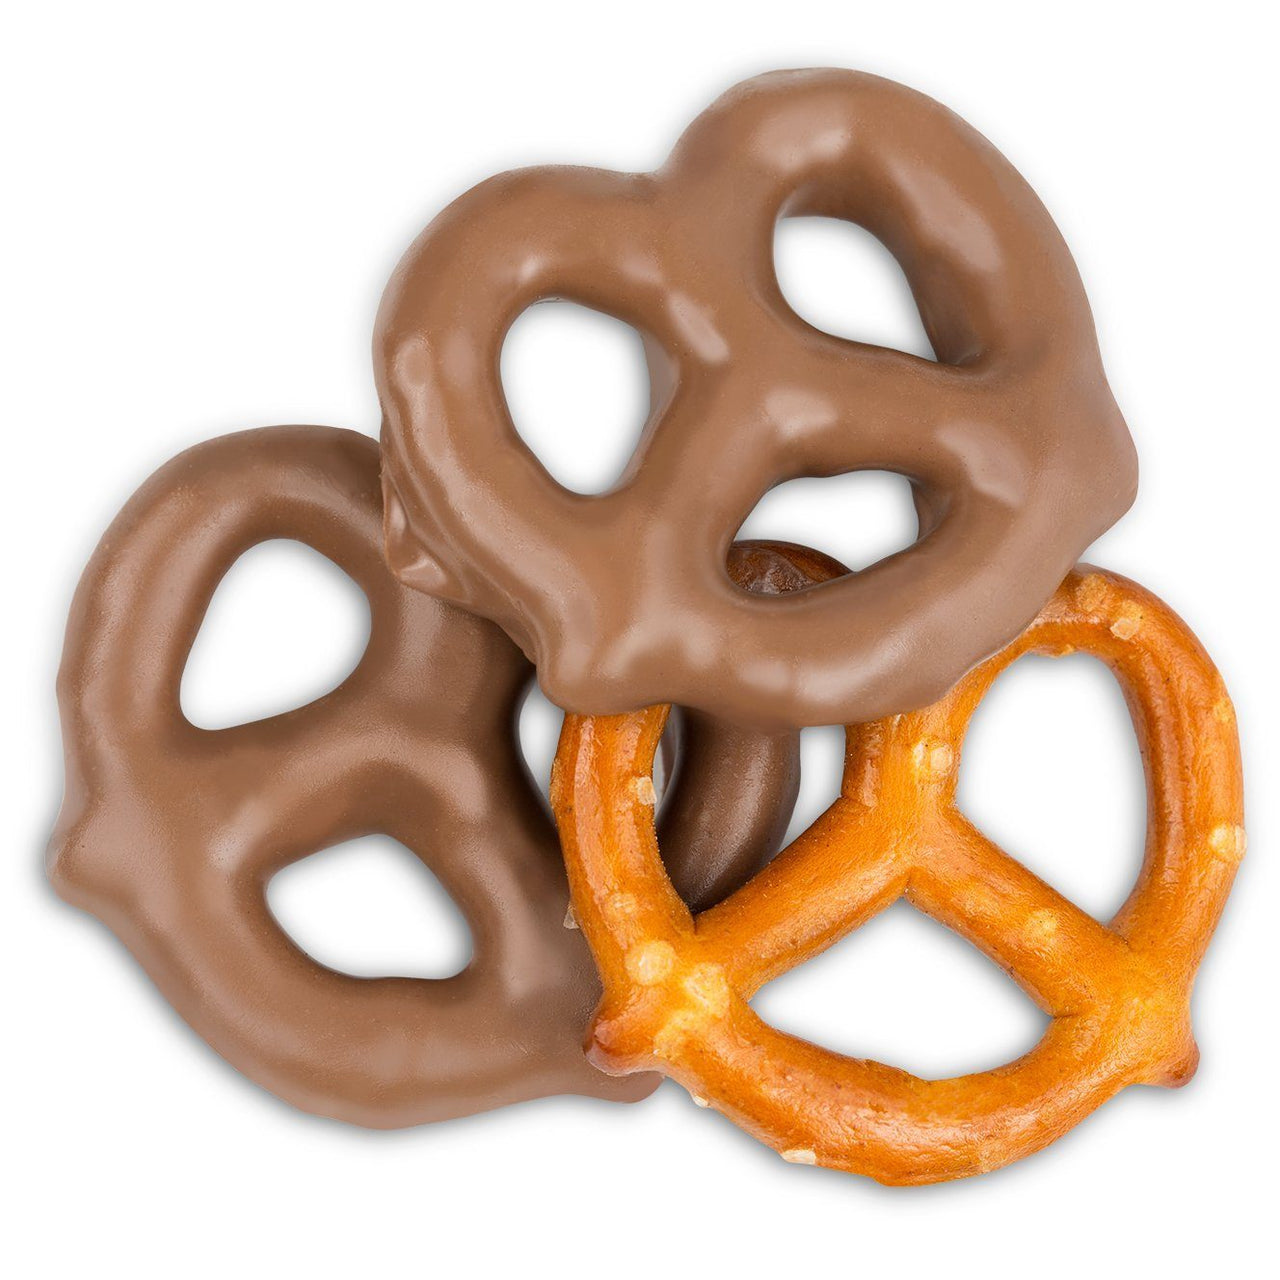 Sugar Free Mini Milk Chocolate Pretzels - Jackie's Chocolate